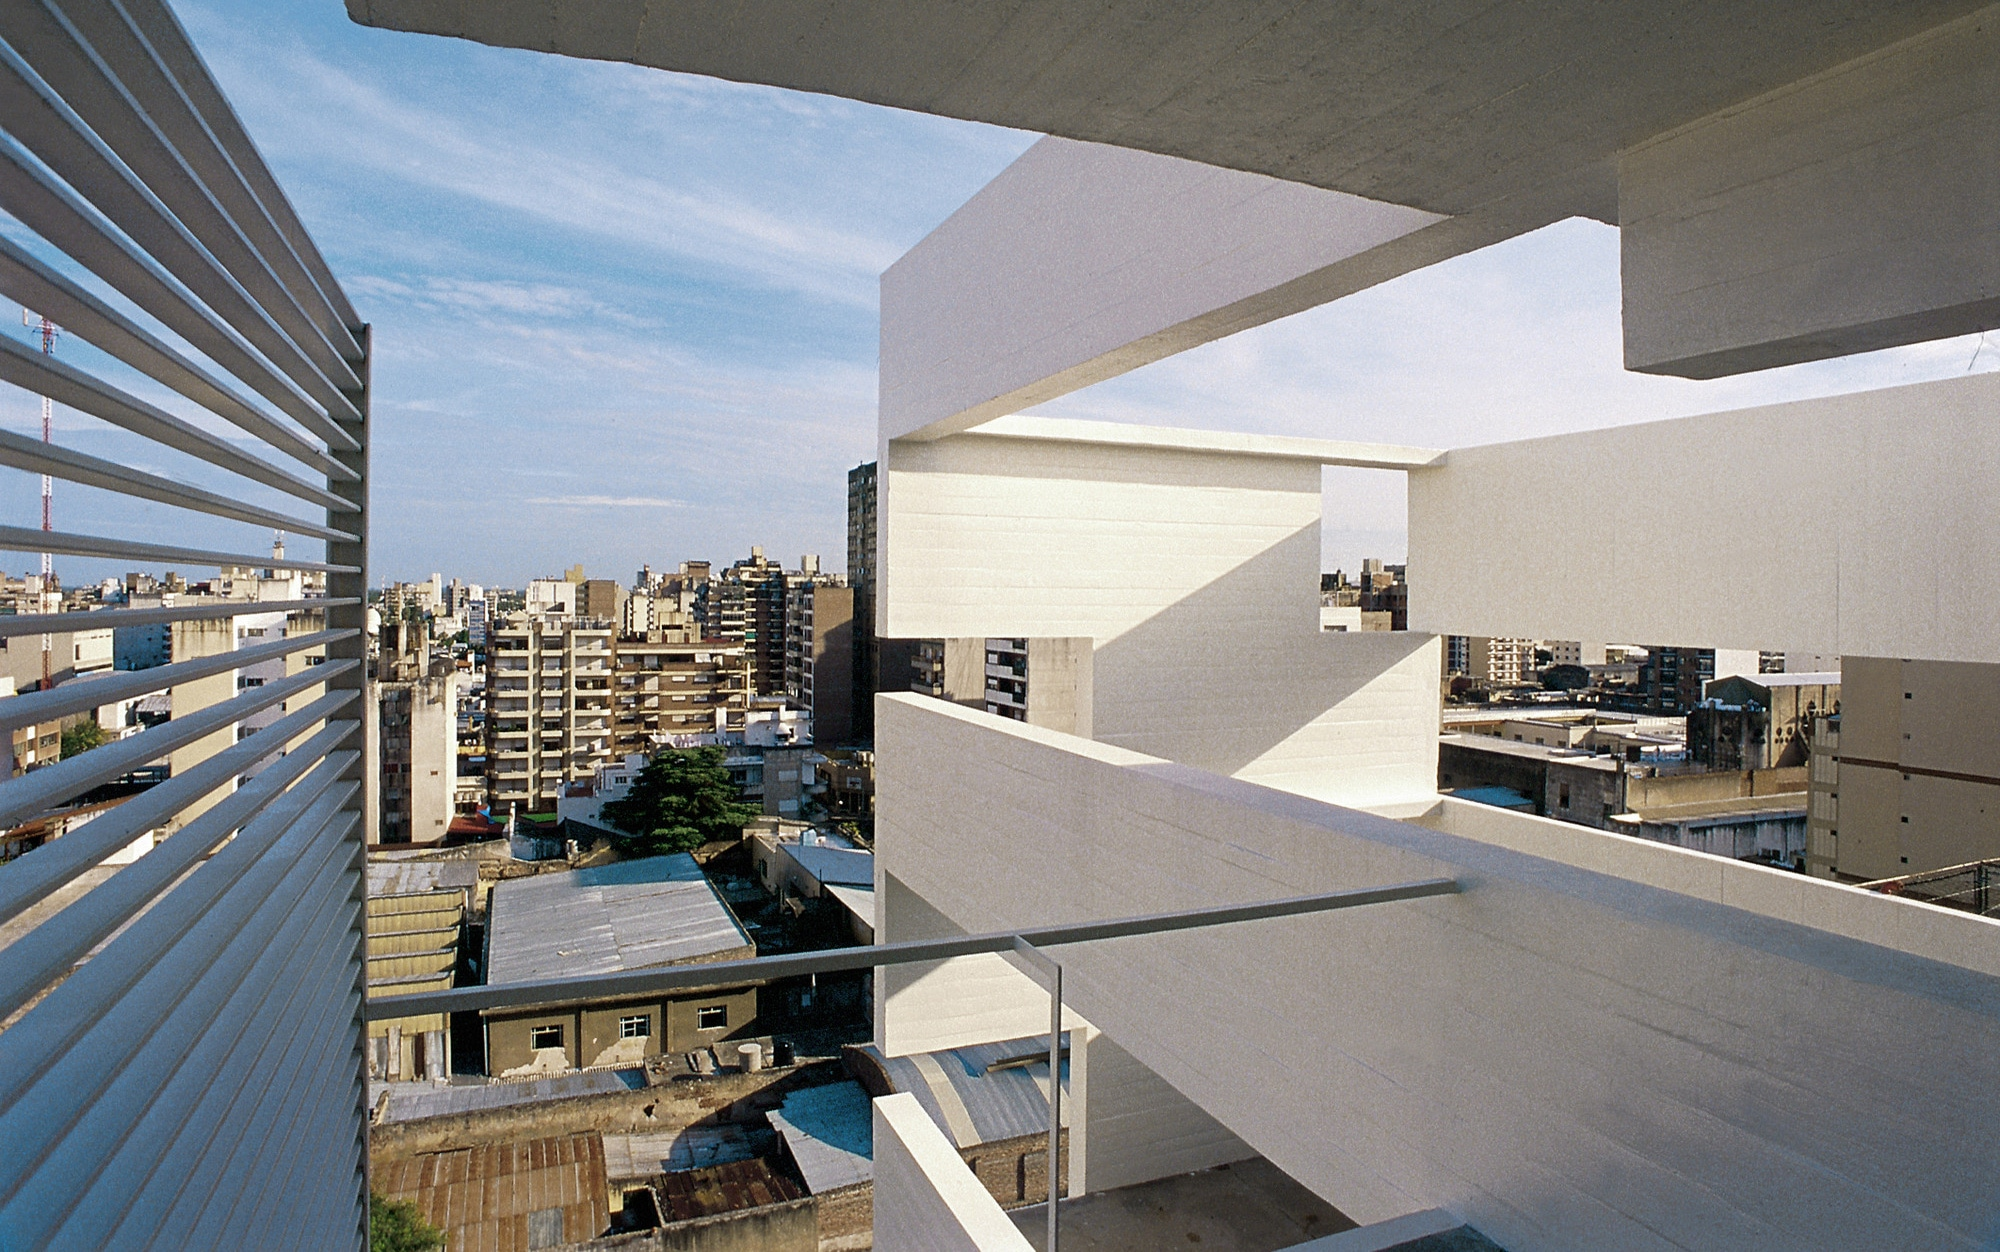 View of Argentina skyline from Altamira building. Has detailed architecture looking at a balcony.